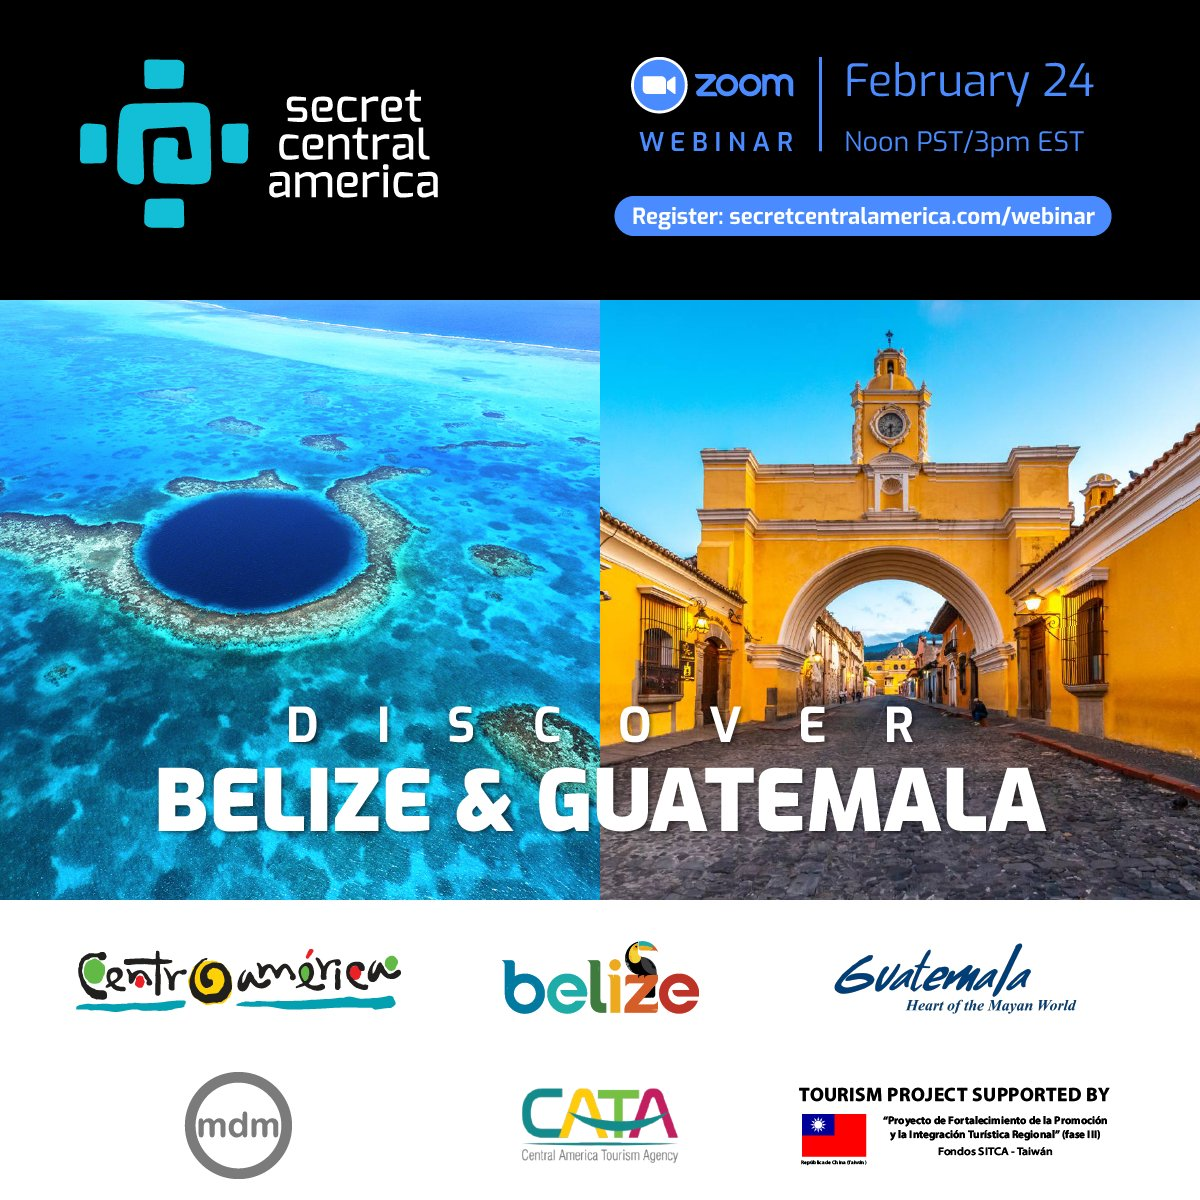 test Twitter Media - Join us to explore the magic of Guatemala & Belize in a 1-hour webinar that will inspire your post pandemic travel! Webinar is Feb. 24, 2021 at Noon PST/3pm EST, click the link to register! @natgeoadventure @NatGeoTravel @Travelzoo @TravelBestBets  https://t.co/nDCjzqViaK https://t.co/26FWVoKfzW